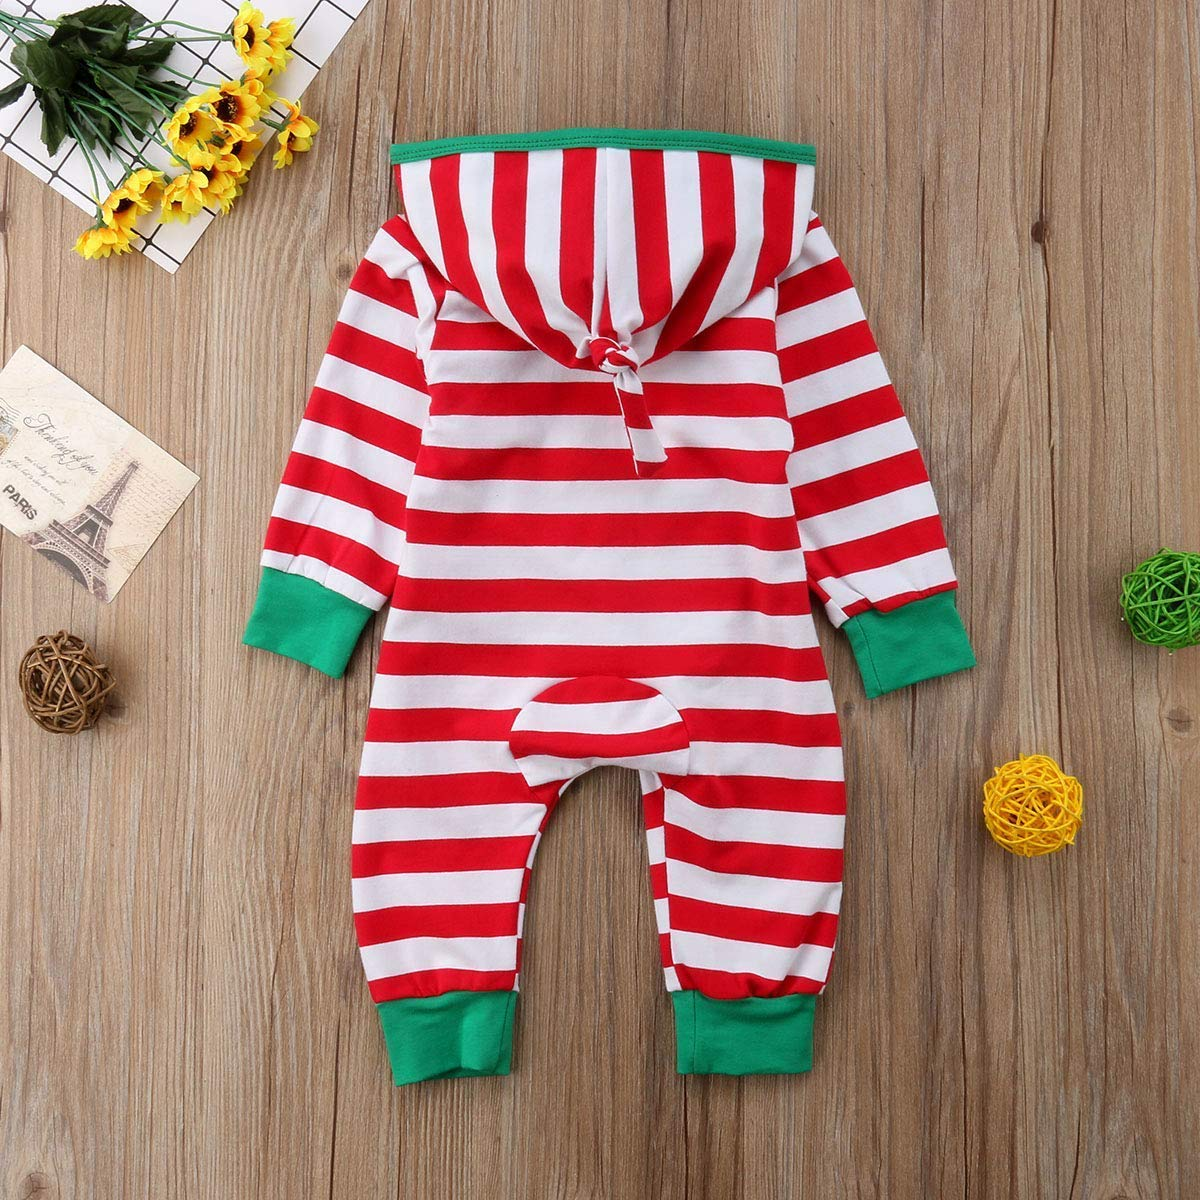 77d90b59d ... GSHOOTS Baby Boy Girls Christmas Outfit Family Pajamas Striped Zipper  Hooded Romper Jumpsuit Newborn Infant Clothes ...